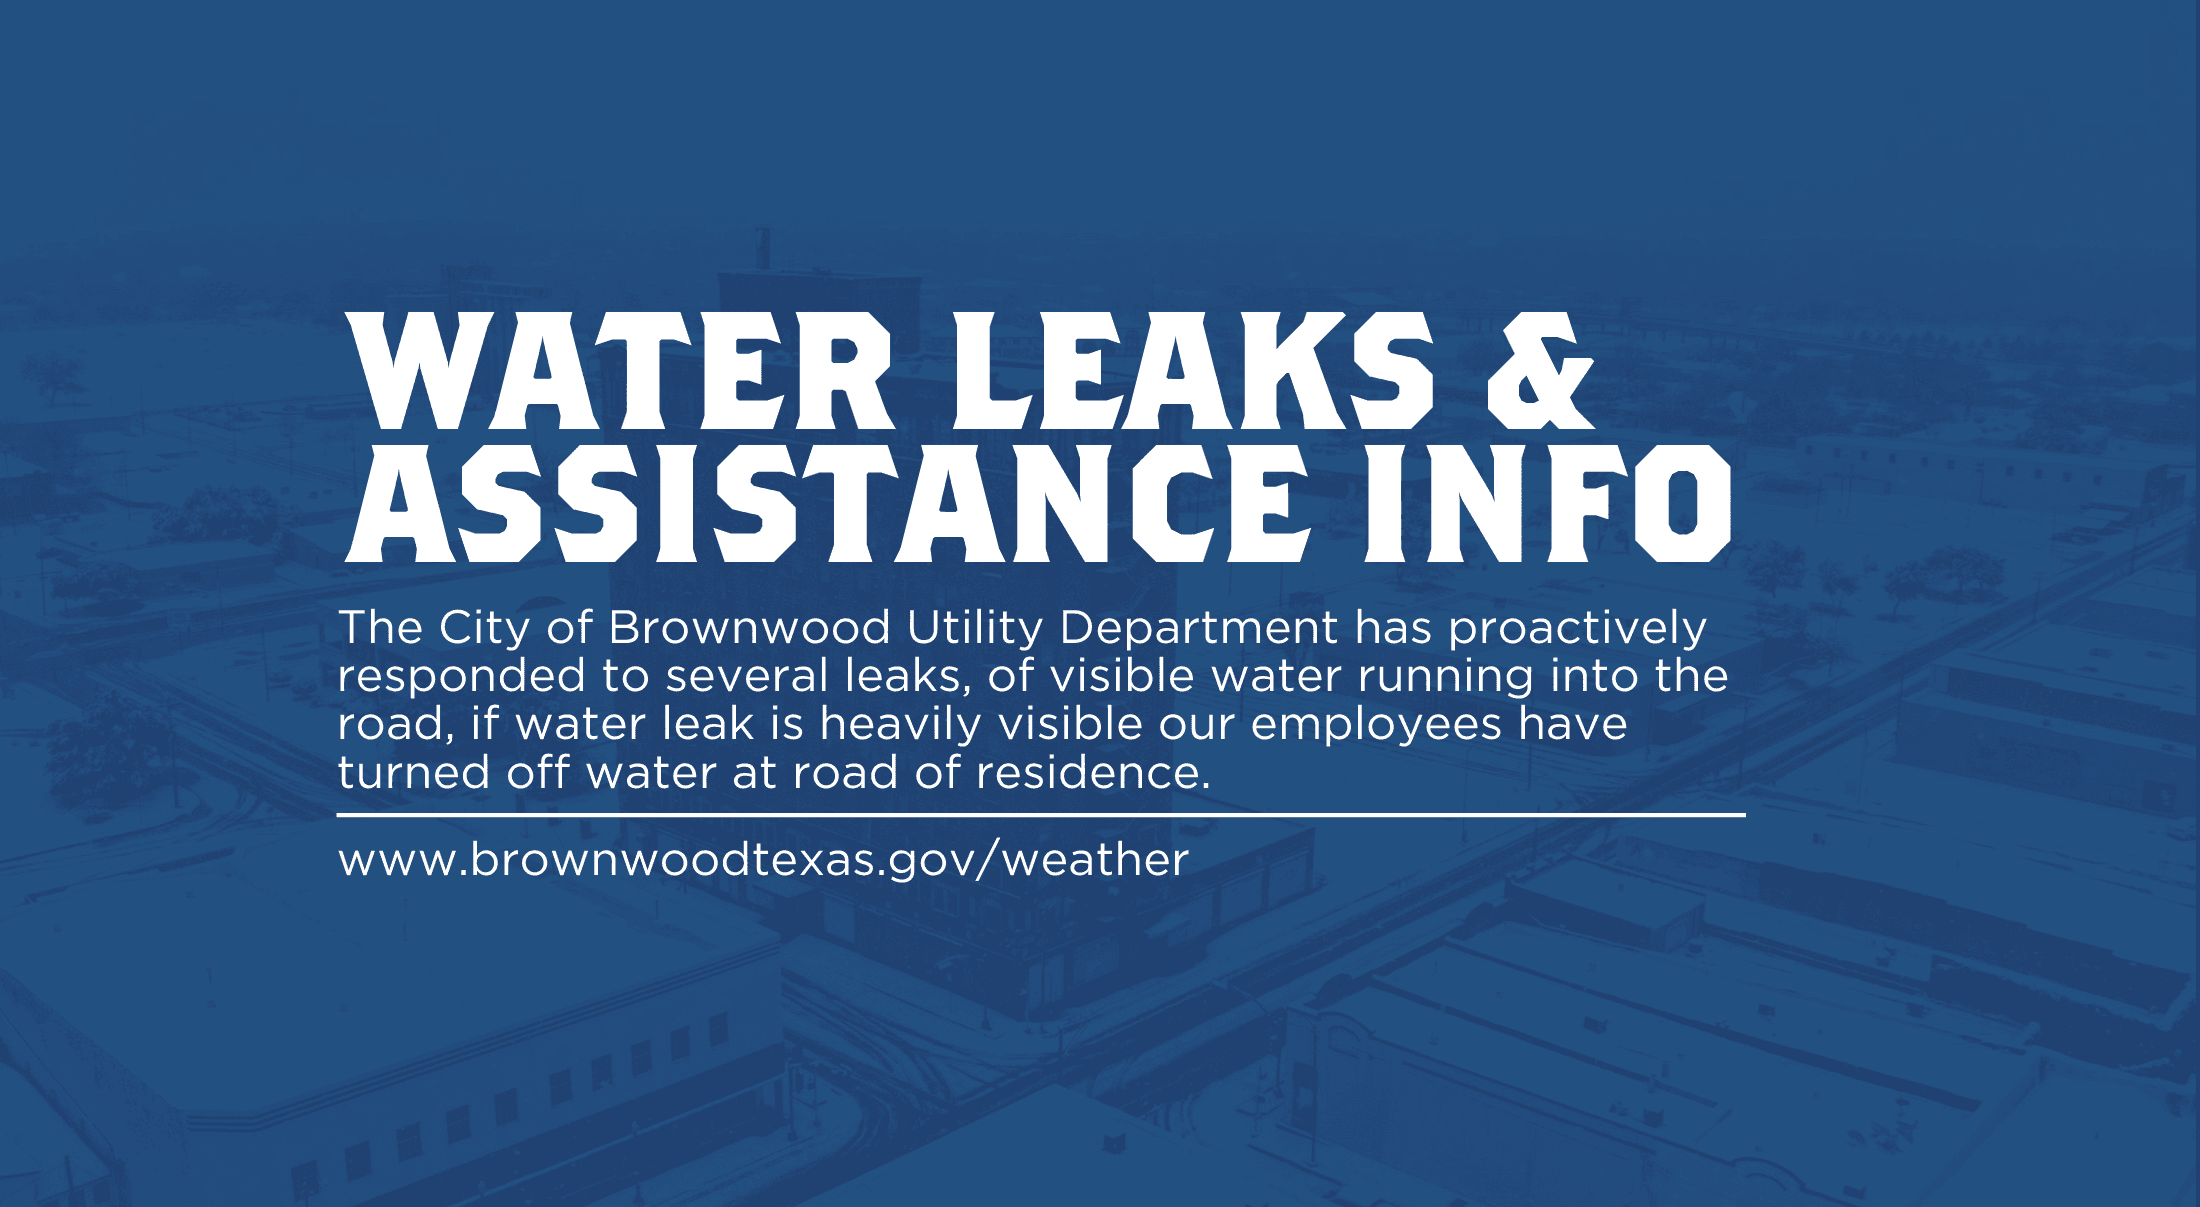 Water Leaks & Assistance